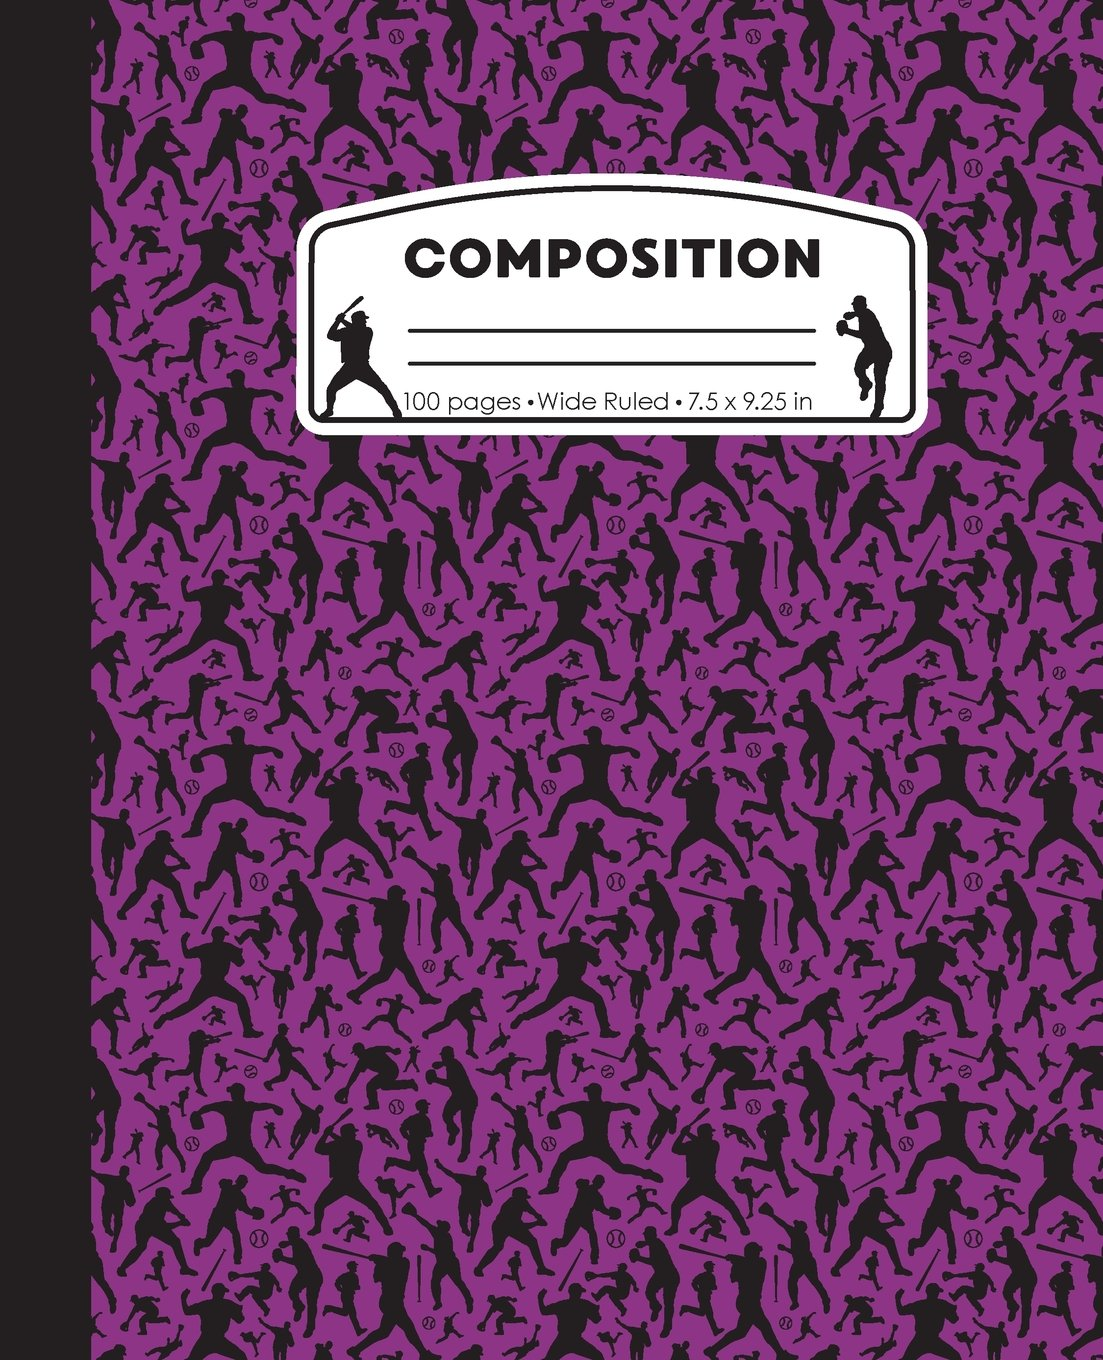 Read Online Composition: Baseball Purple Marble Composition Notebook. Ball Player Wide Ruled Book 7.5 x 9.25 in, 100 pages, journal for girls boys, kids, ... teachers (Baseball Marble Composition Books) PDF